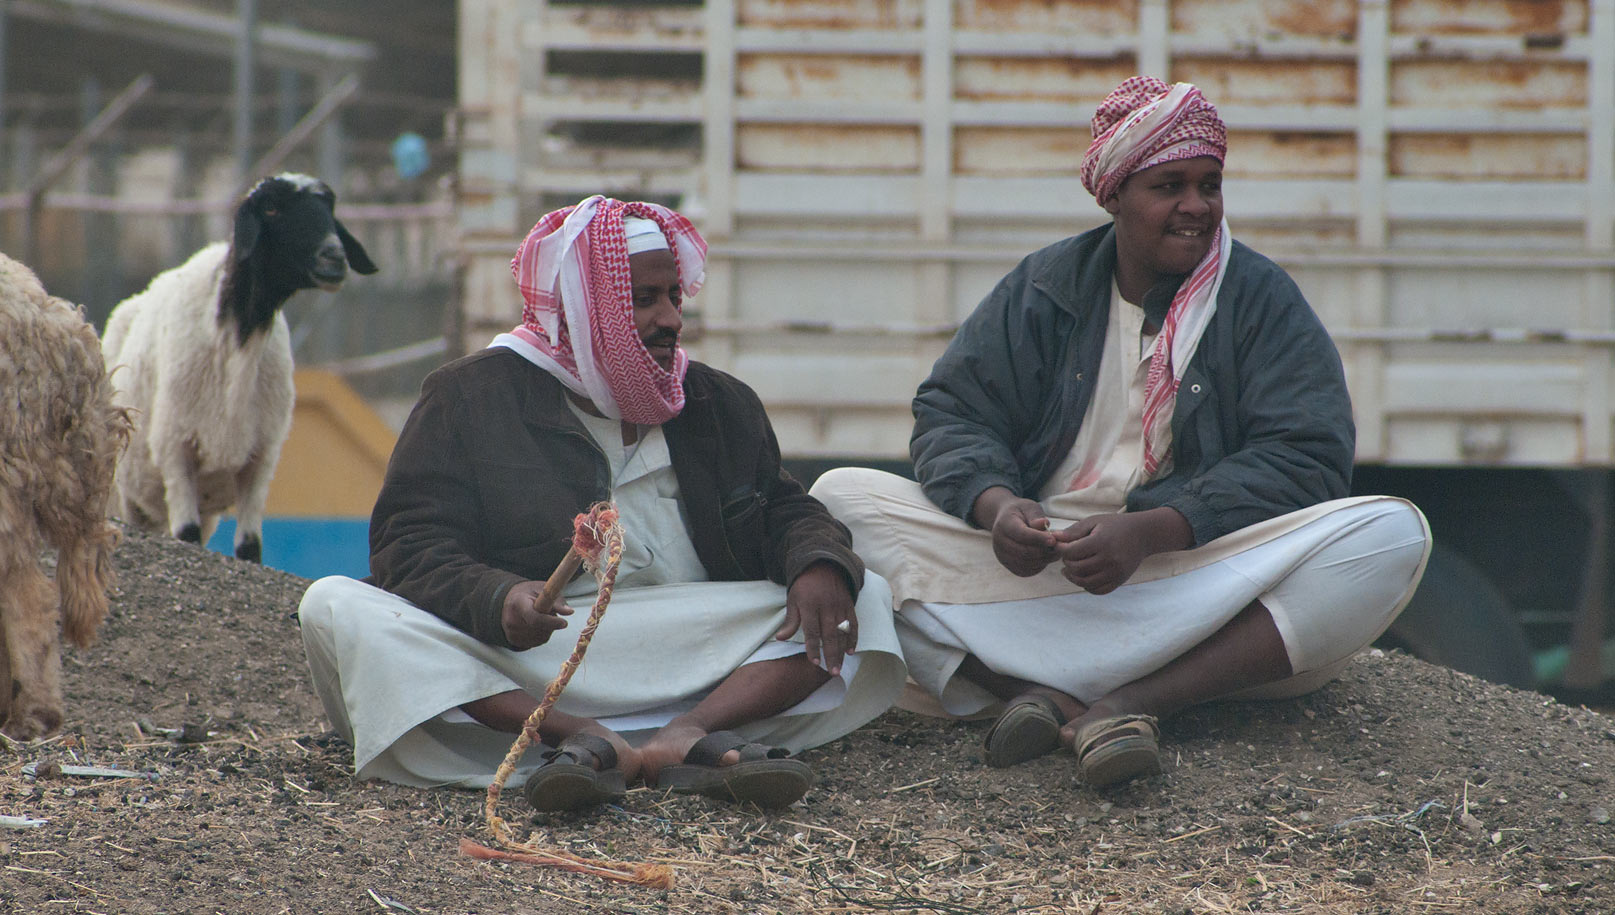 Two shepherds sitting on gravel hills opposite to...wholesale markets area. Doha, Qatar